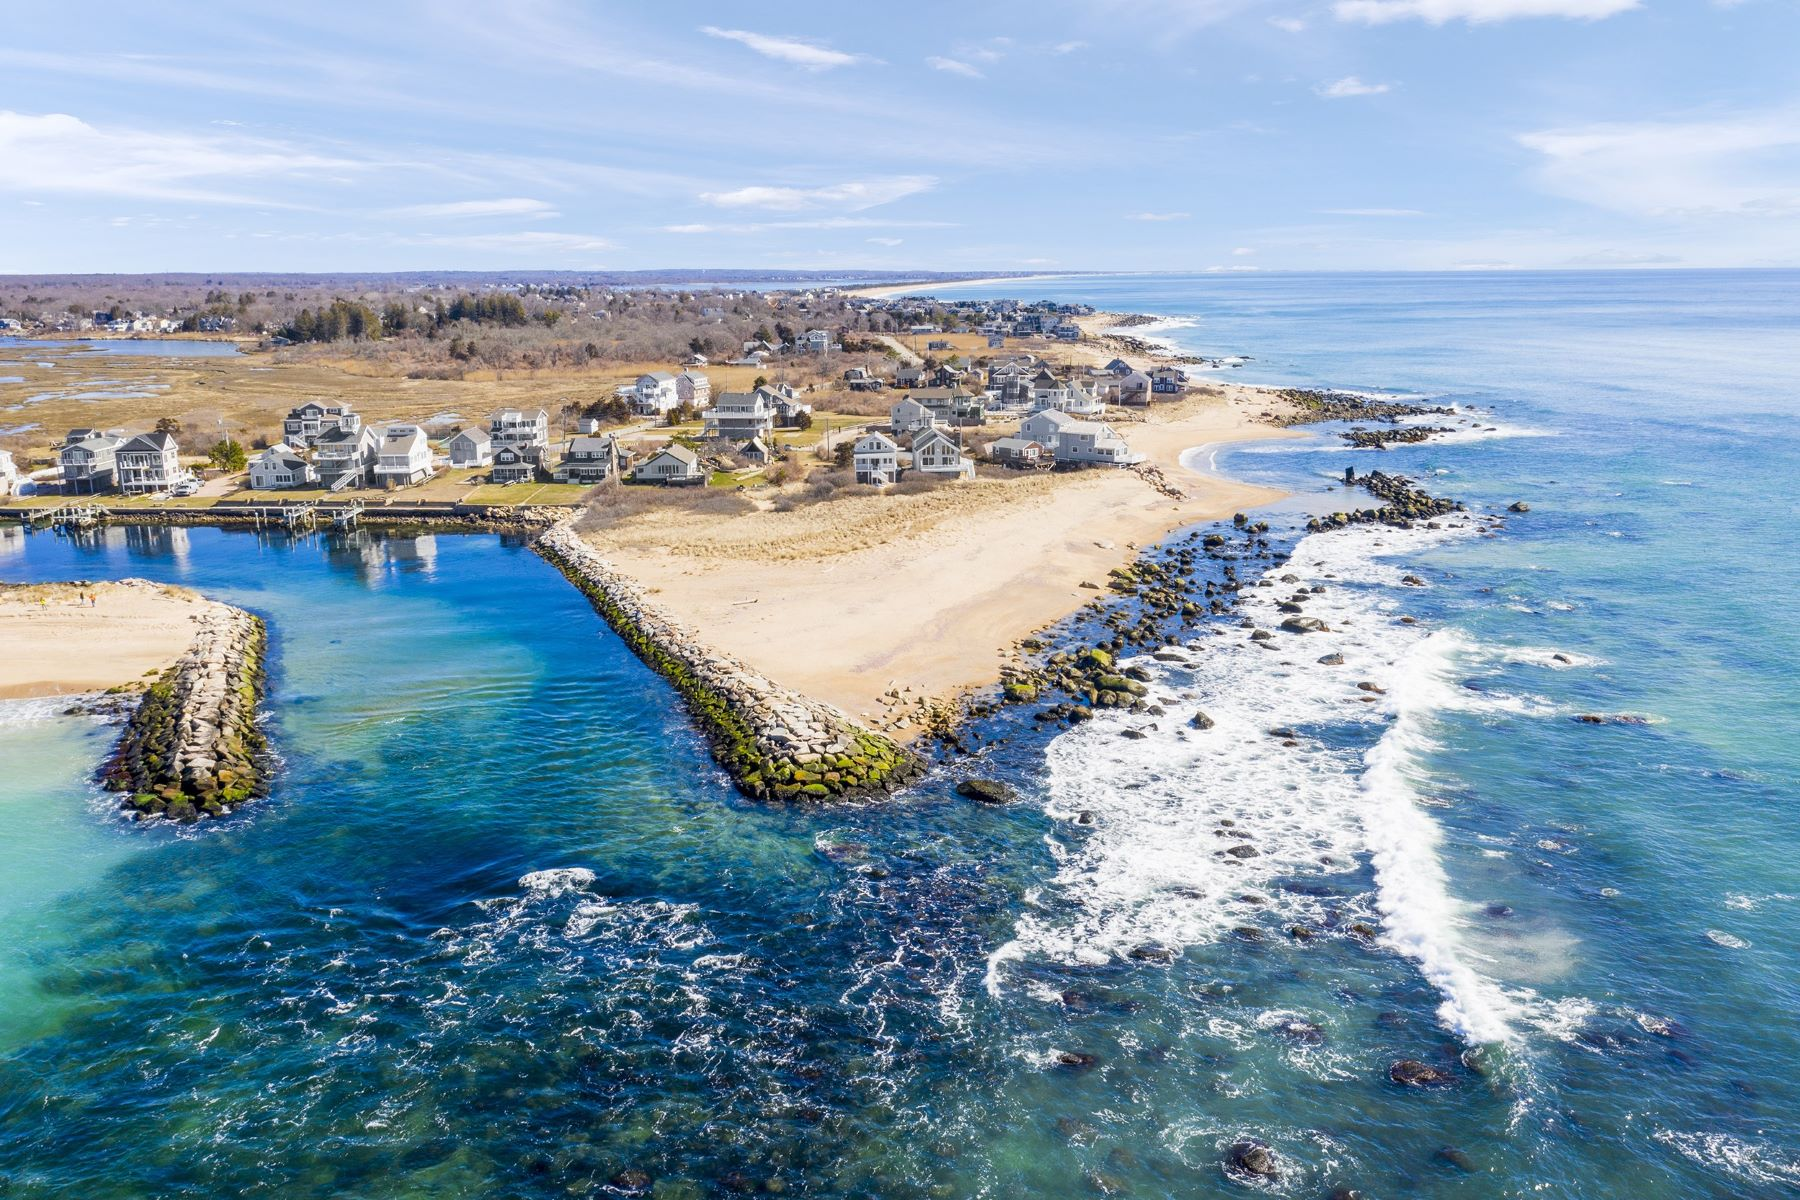 Single Family Homes for Sale at 19 West End Road, Charlestown, RI 19 West End Road Charlestown, Rhode Island 02813 United States